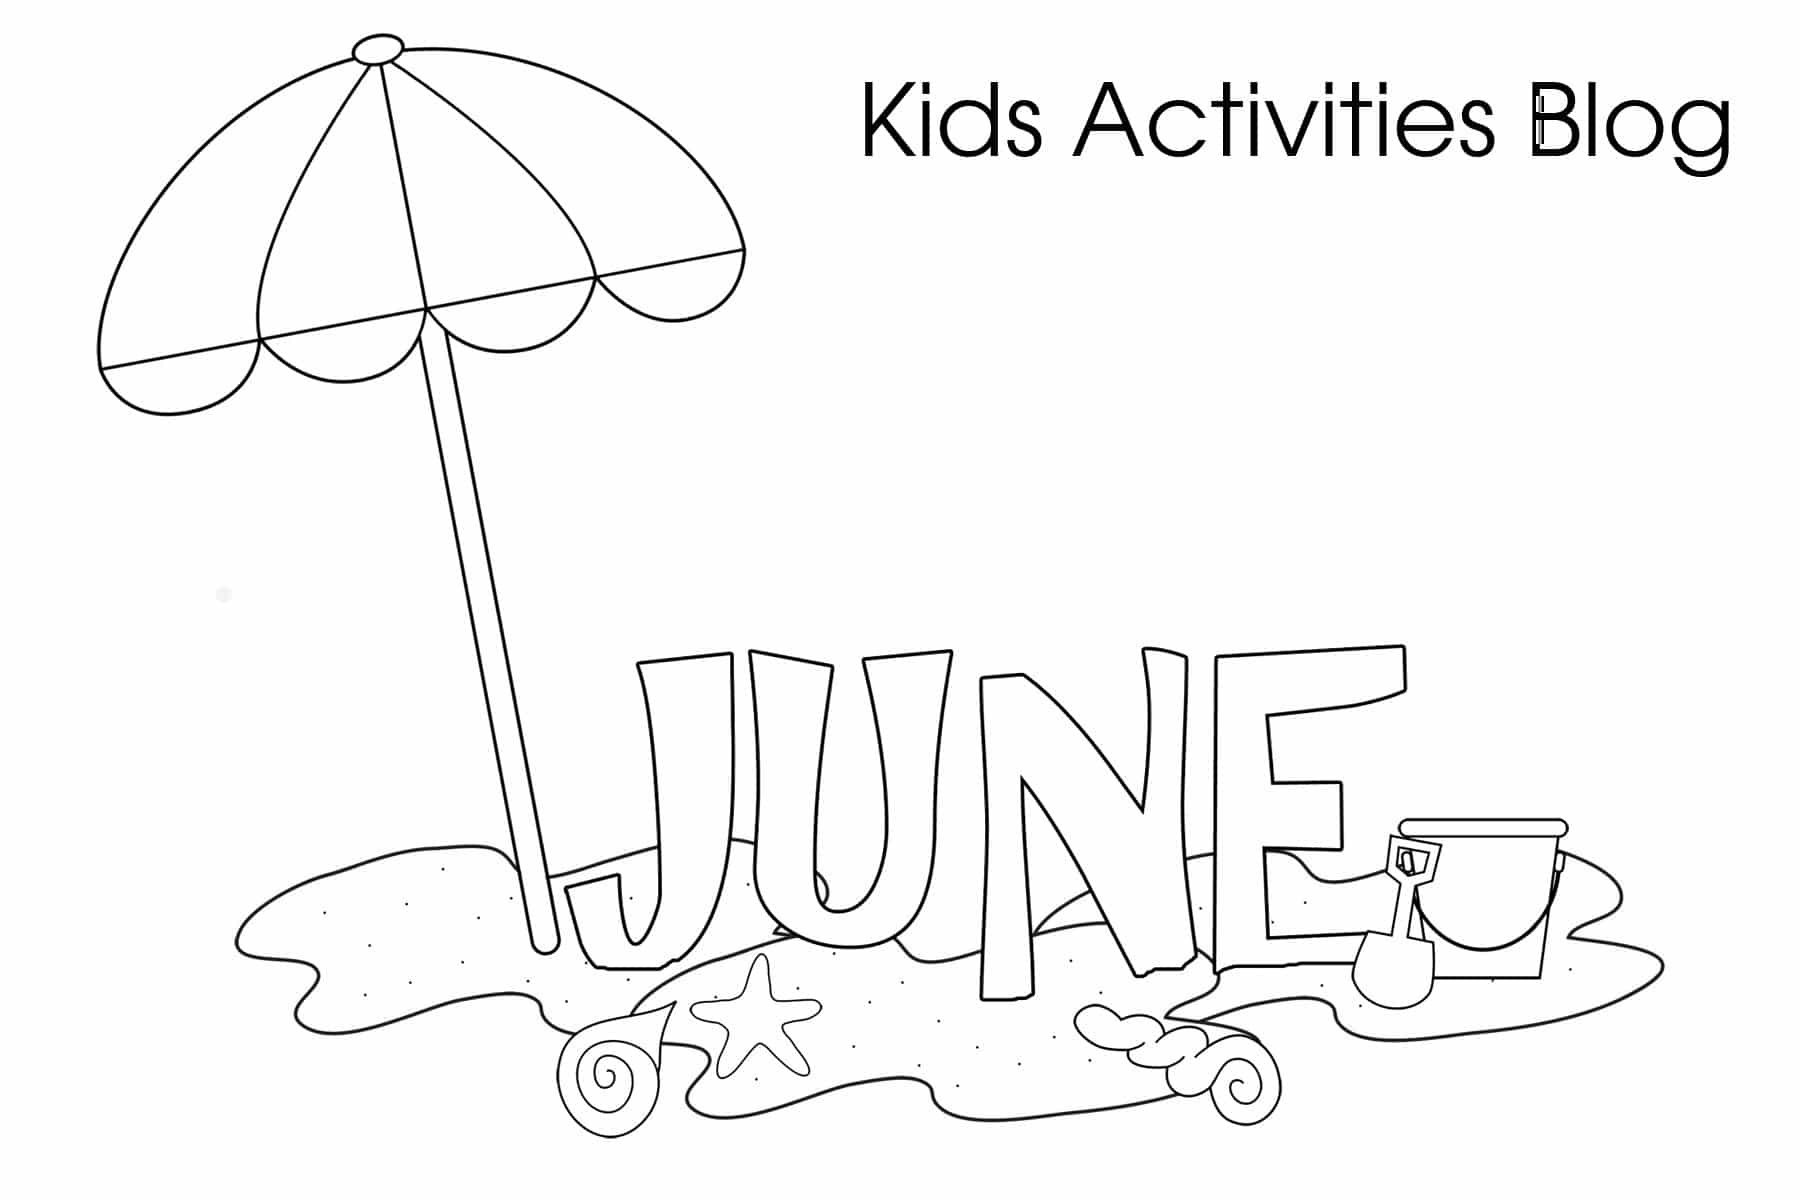 June Coloring Pages Preschoolers